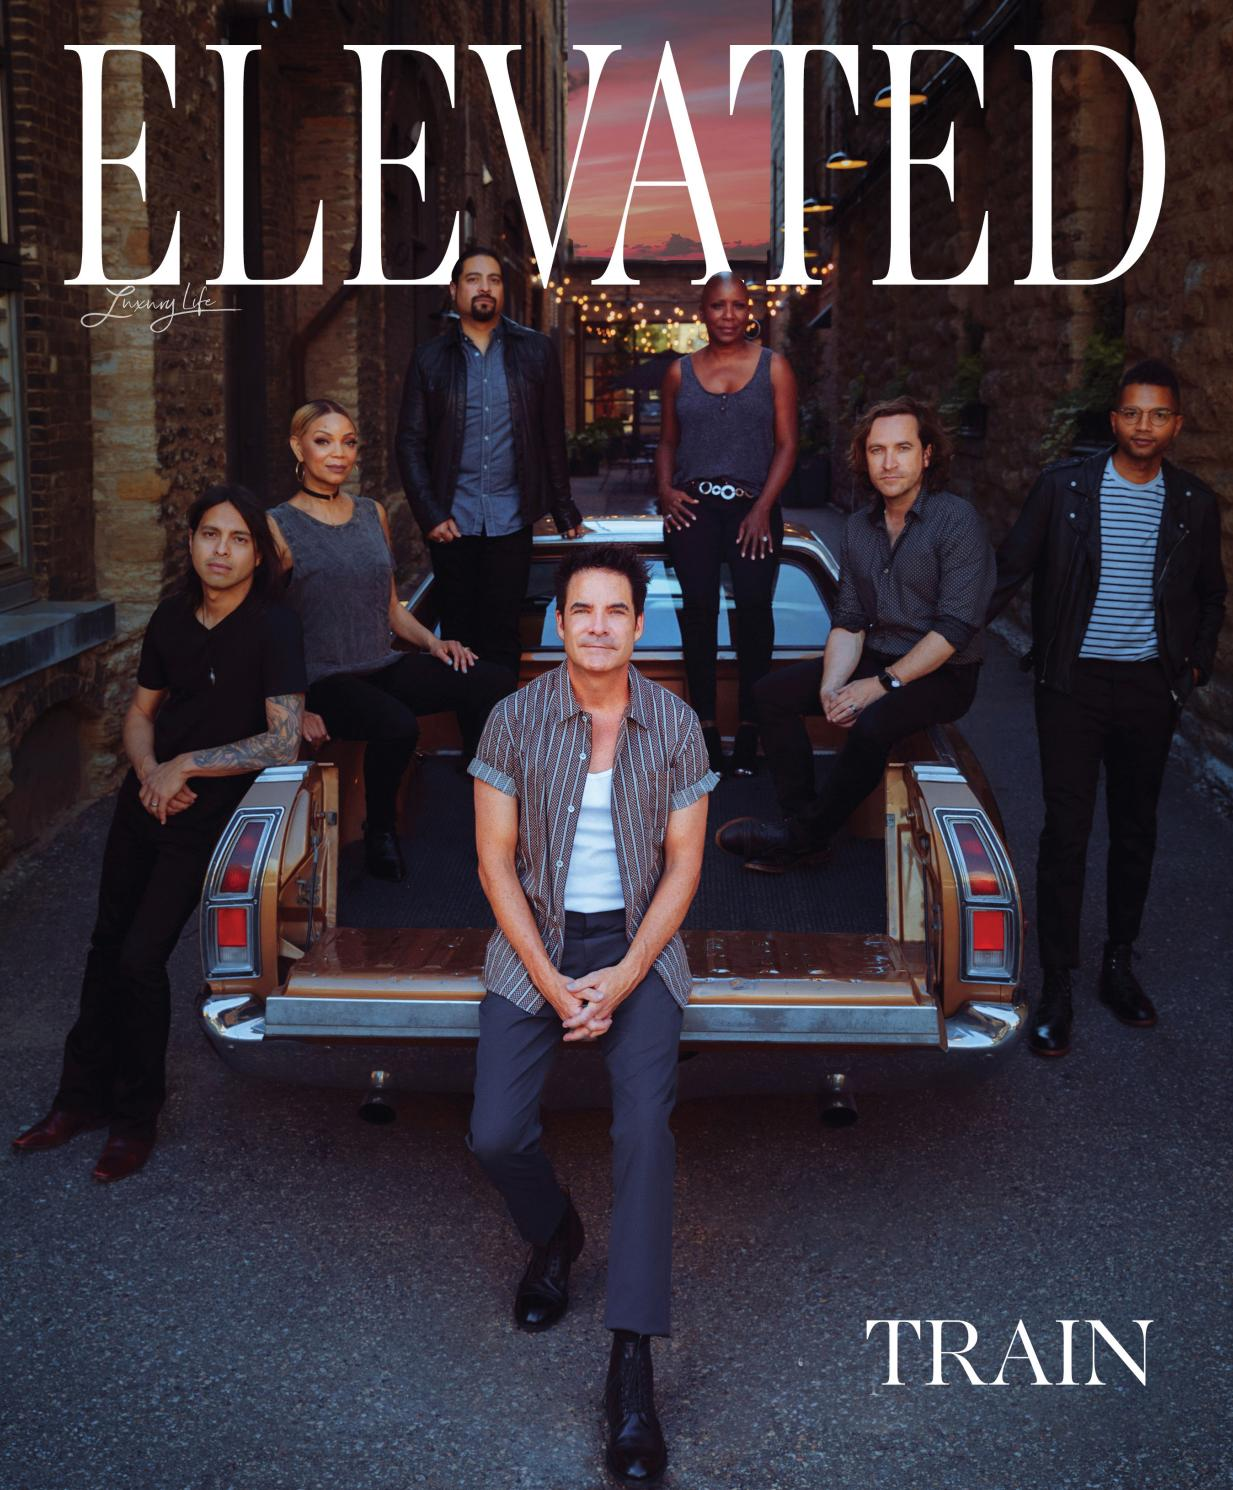 Elevated Luxury Life Spring 2019 - Train by Elevated Luxury Life